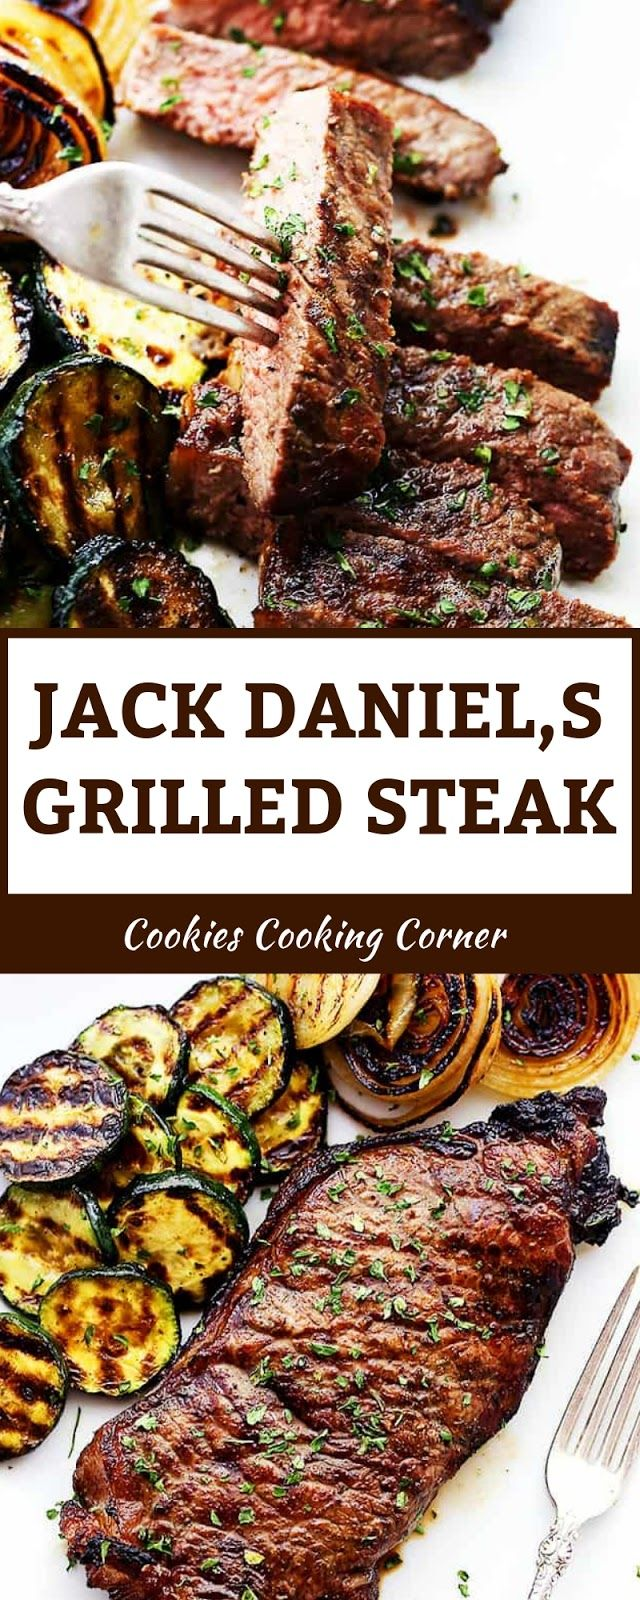 JACK DANIEL,S GRILLED STEAK #grilledsteakmarinades